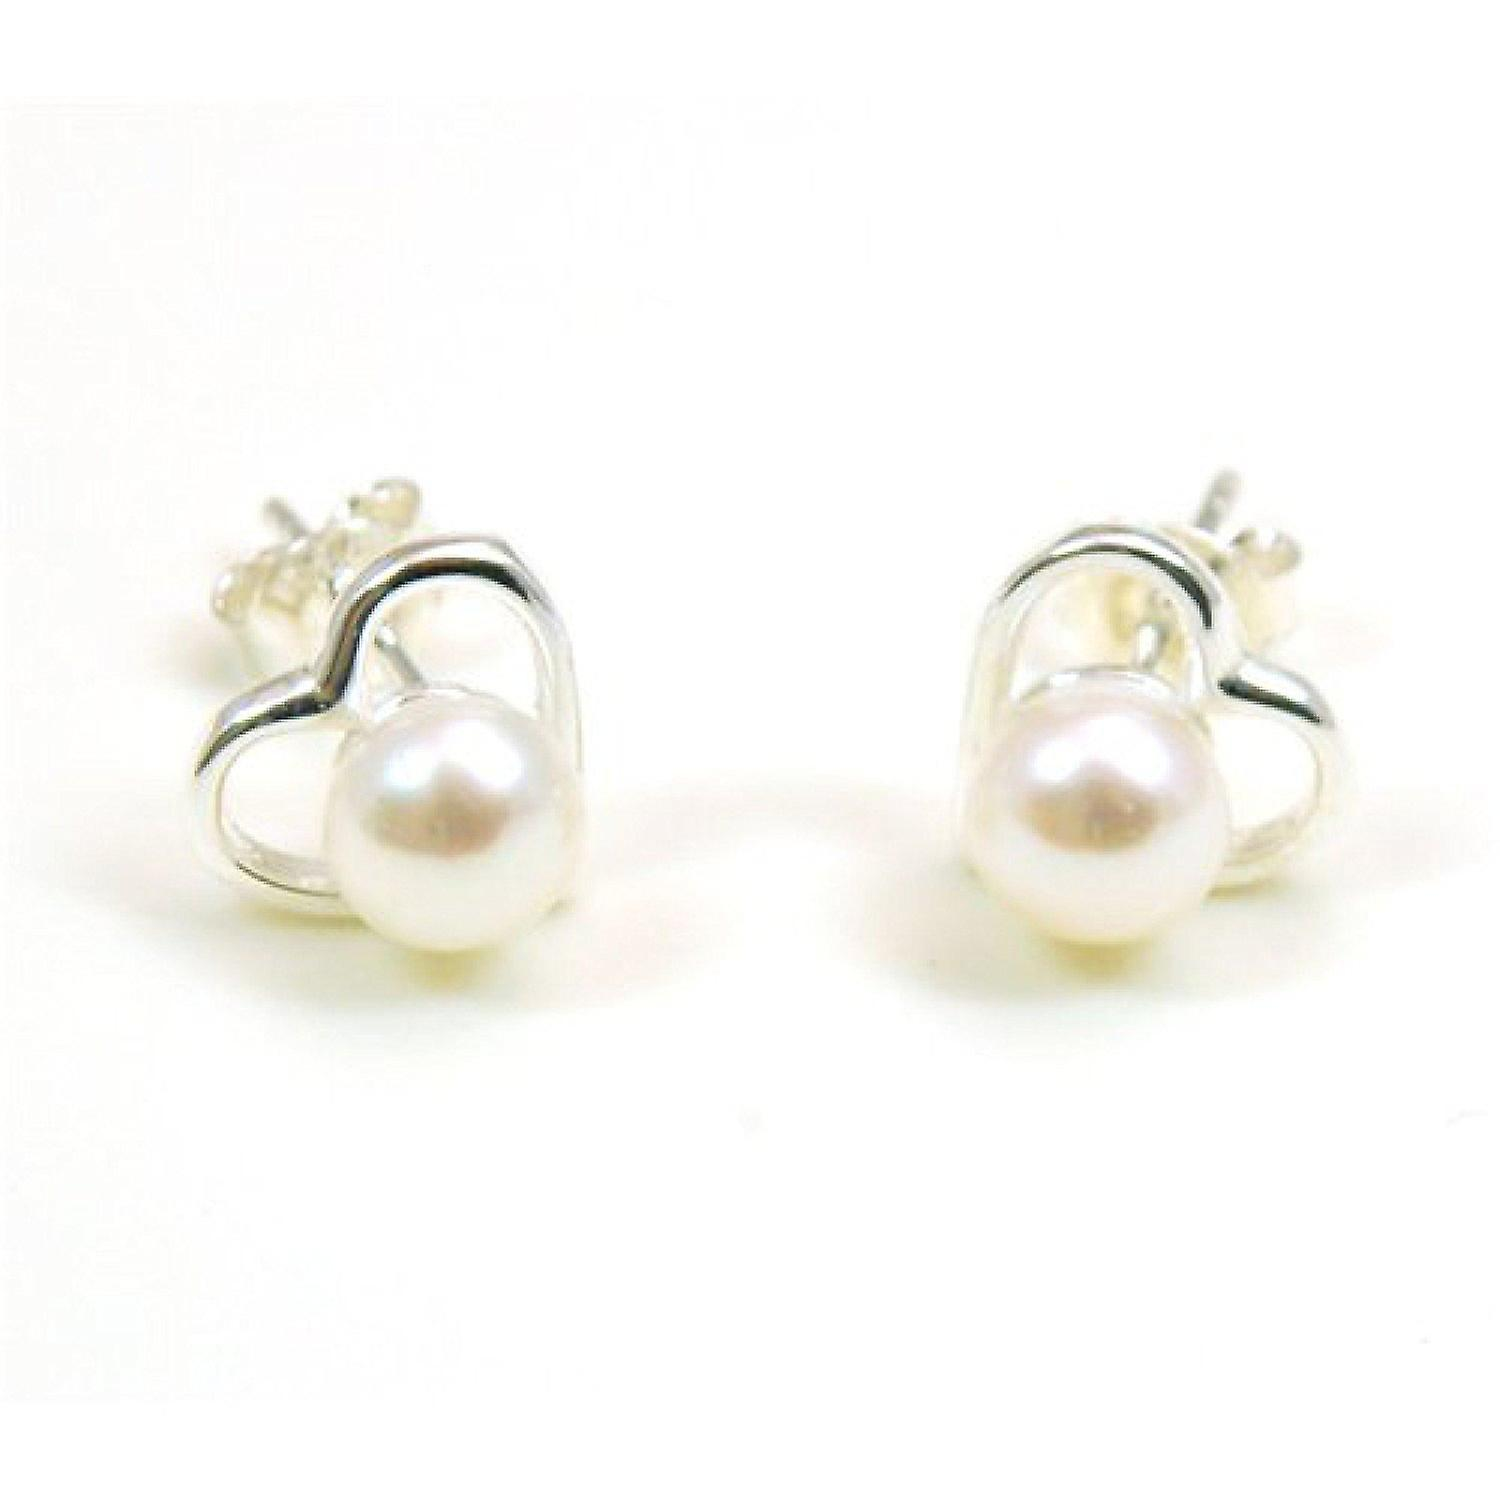 Metal Stud Profielen Gamma The Olivia Collection Sterling Silver Pearl Heart Stud Earrings